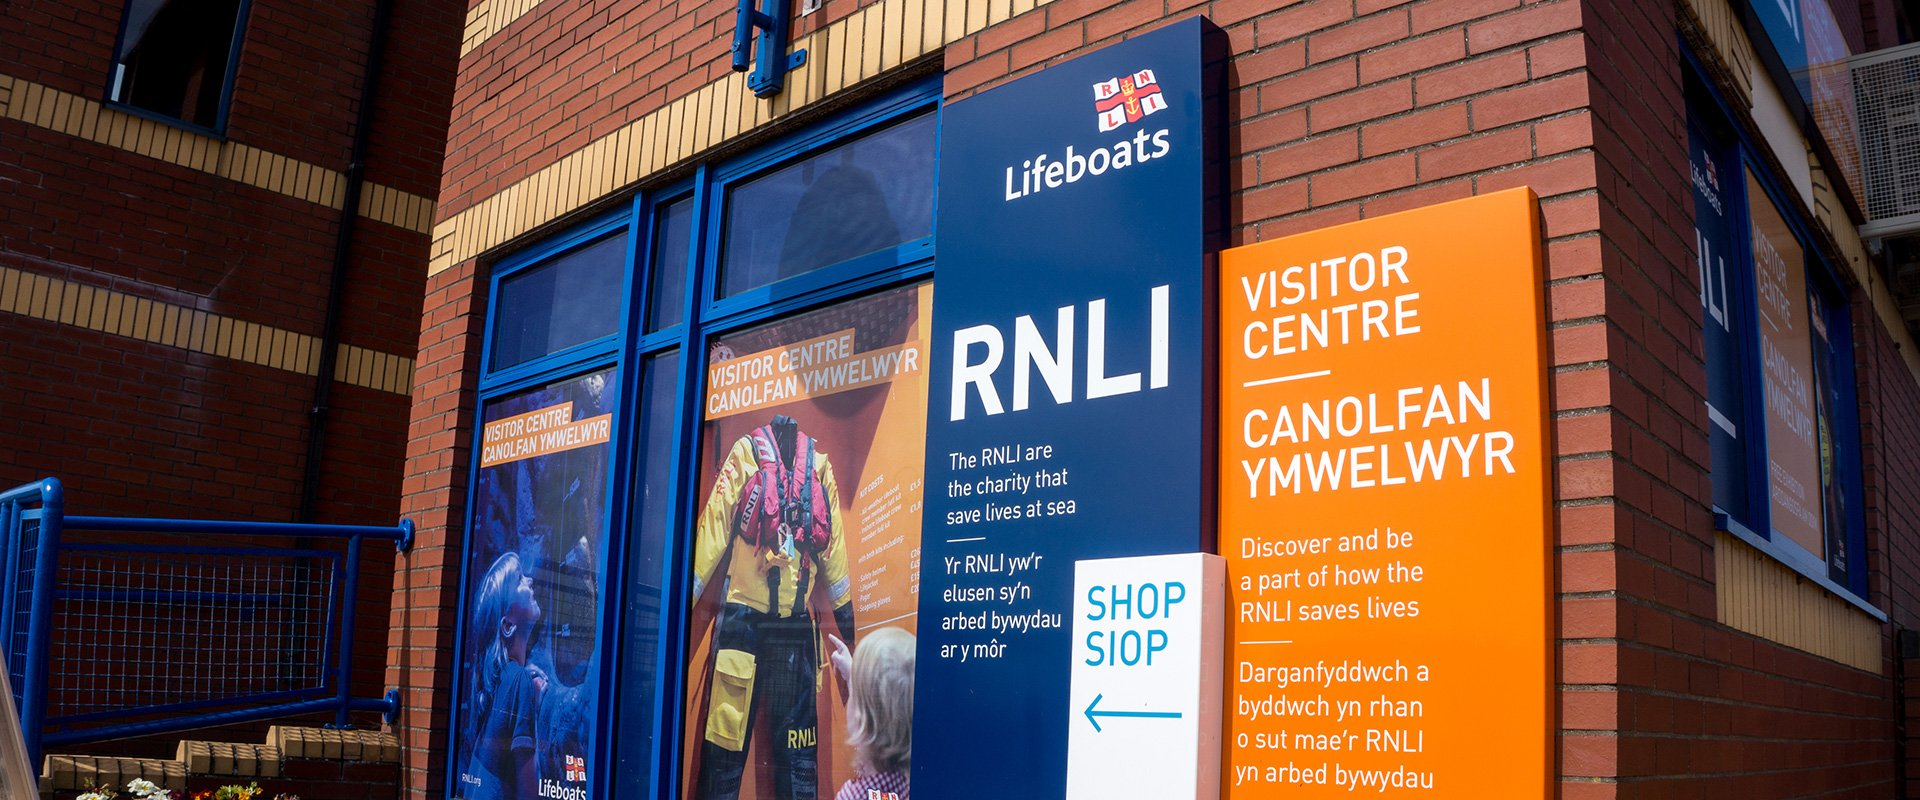 RNLI Barry Island Visitor Centre building signage branding